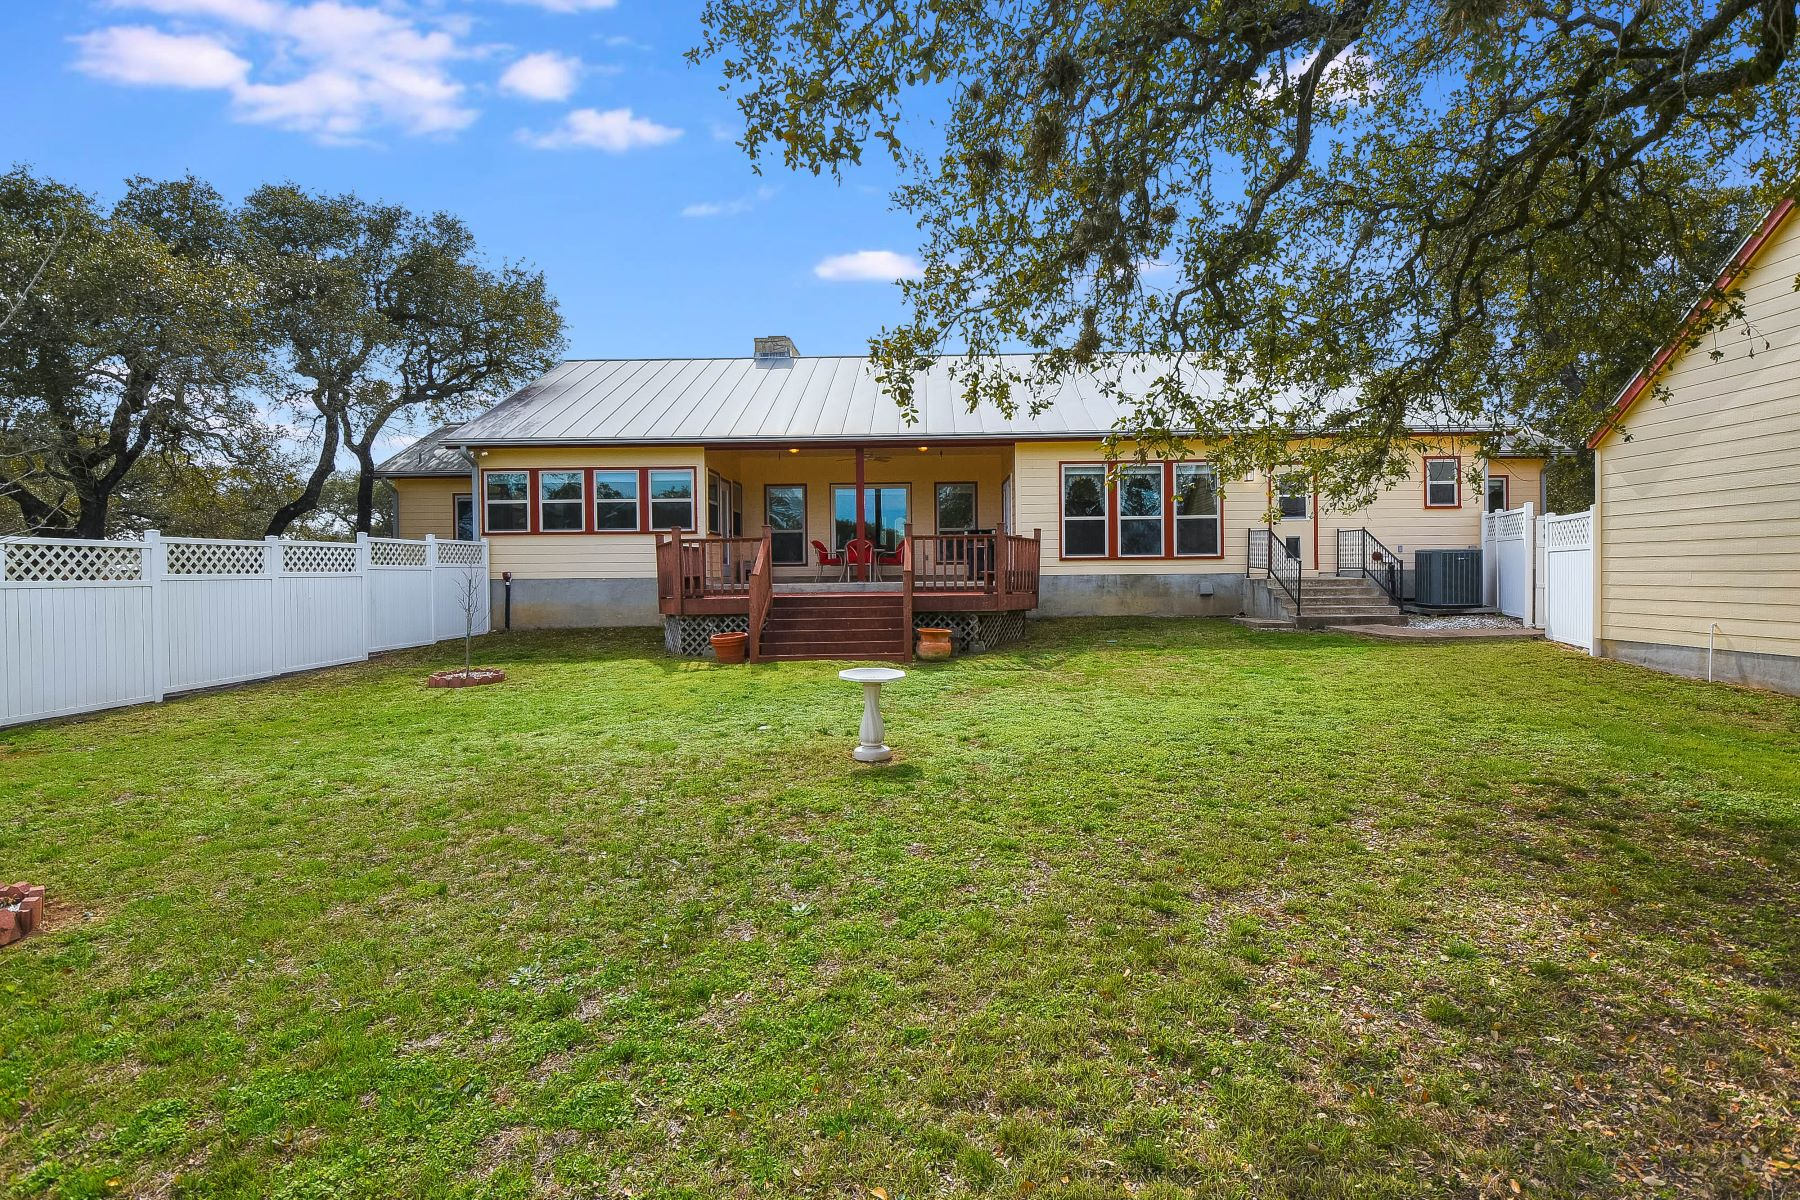 Additional photo for property listing at Country Living with Acreage 309 Pecan Parkway Boerne, Texas 78006 Estados Unidos